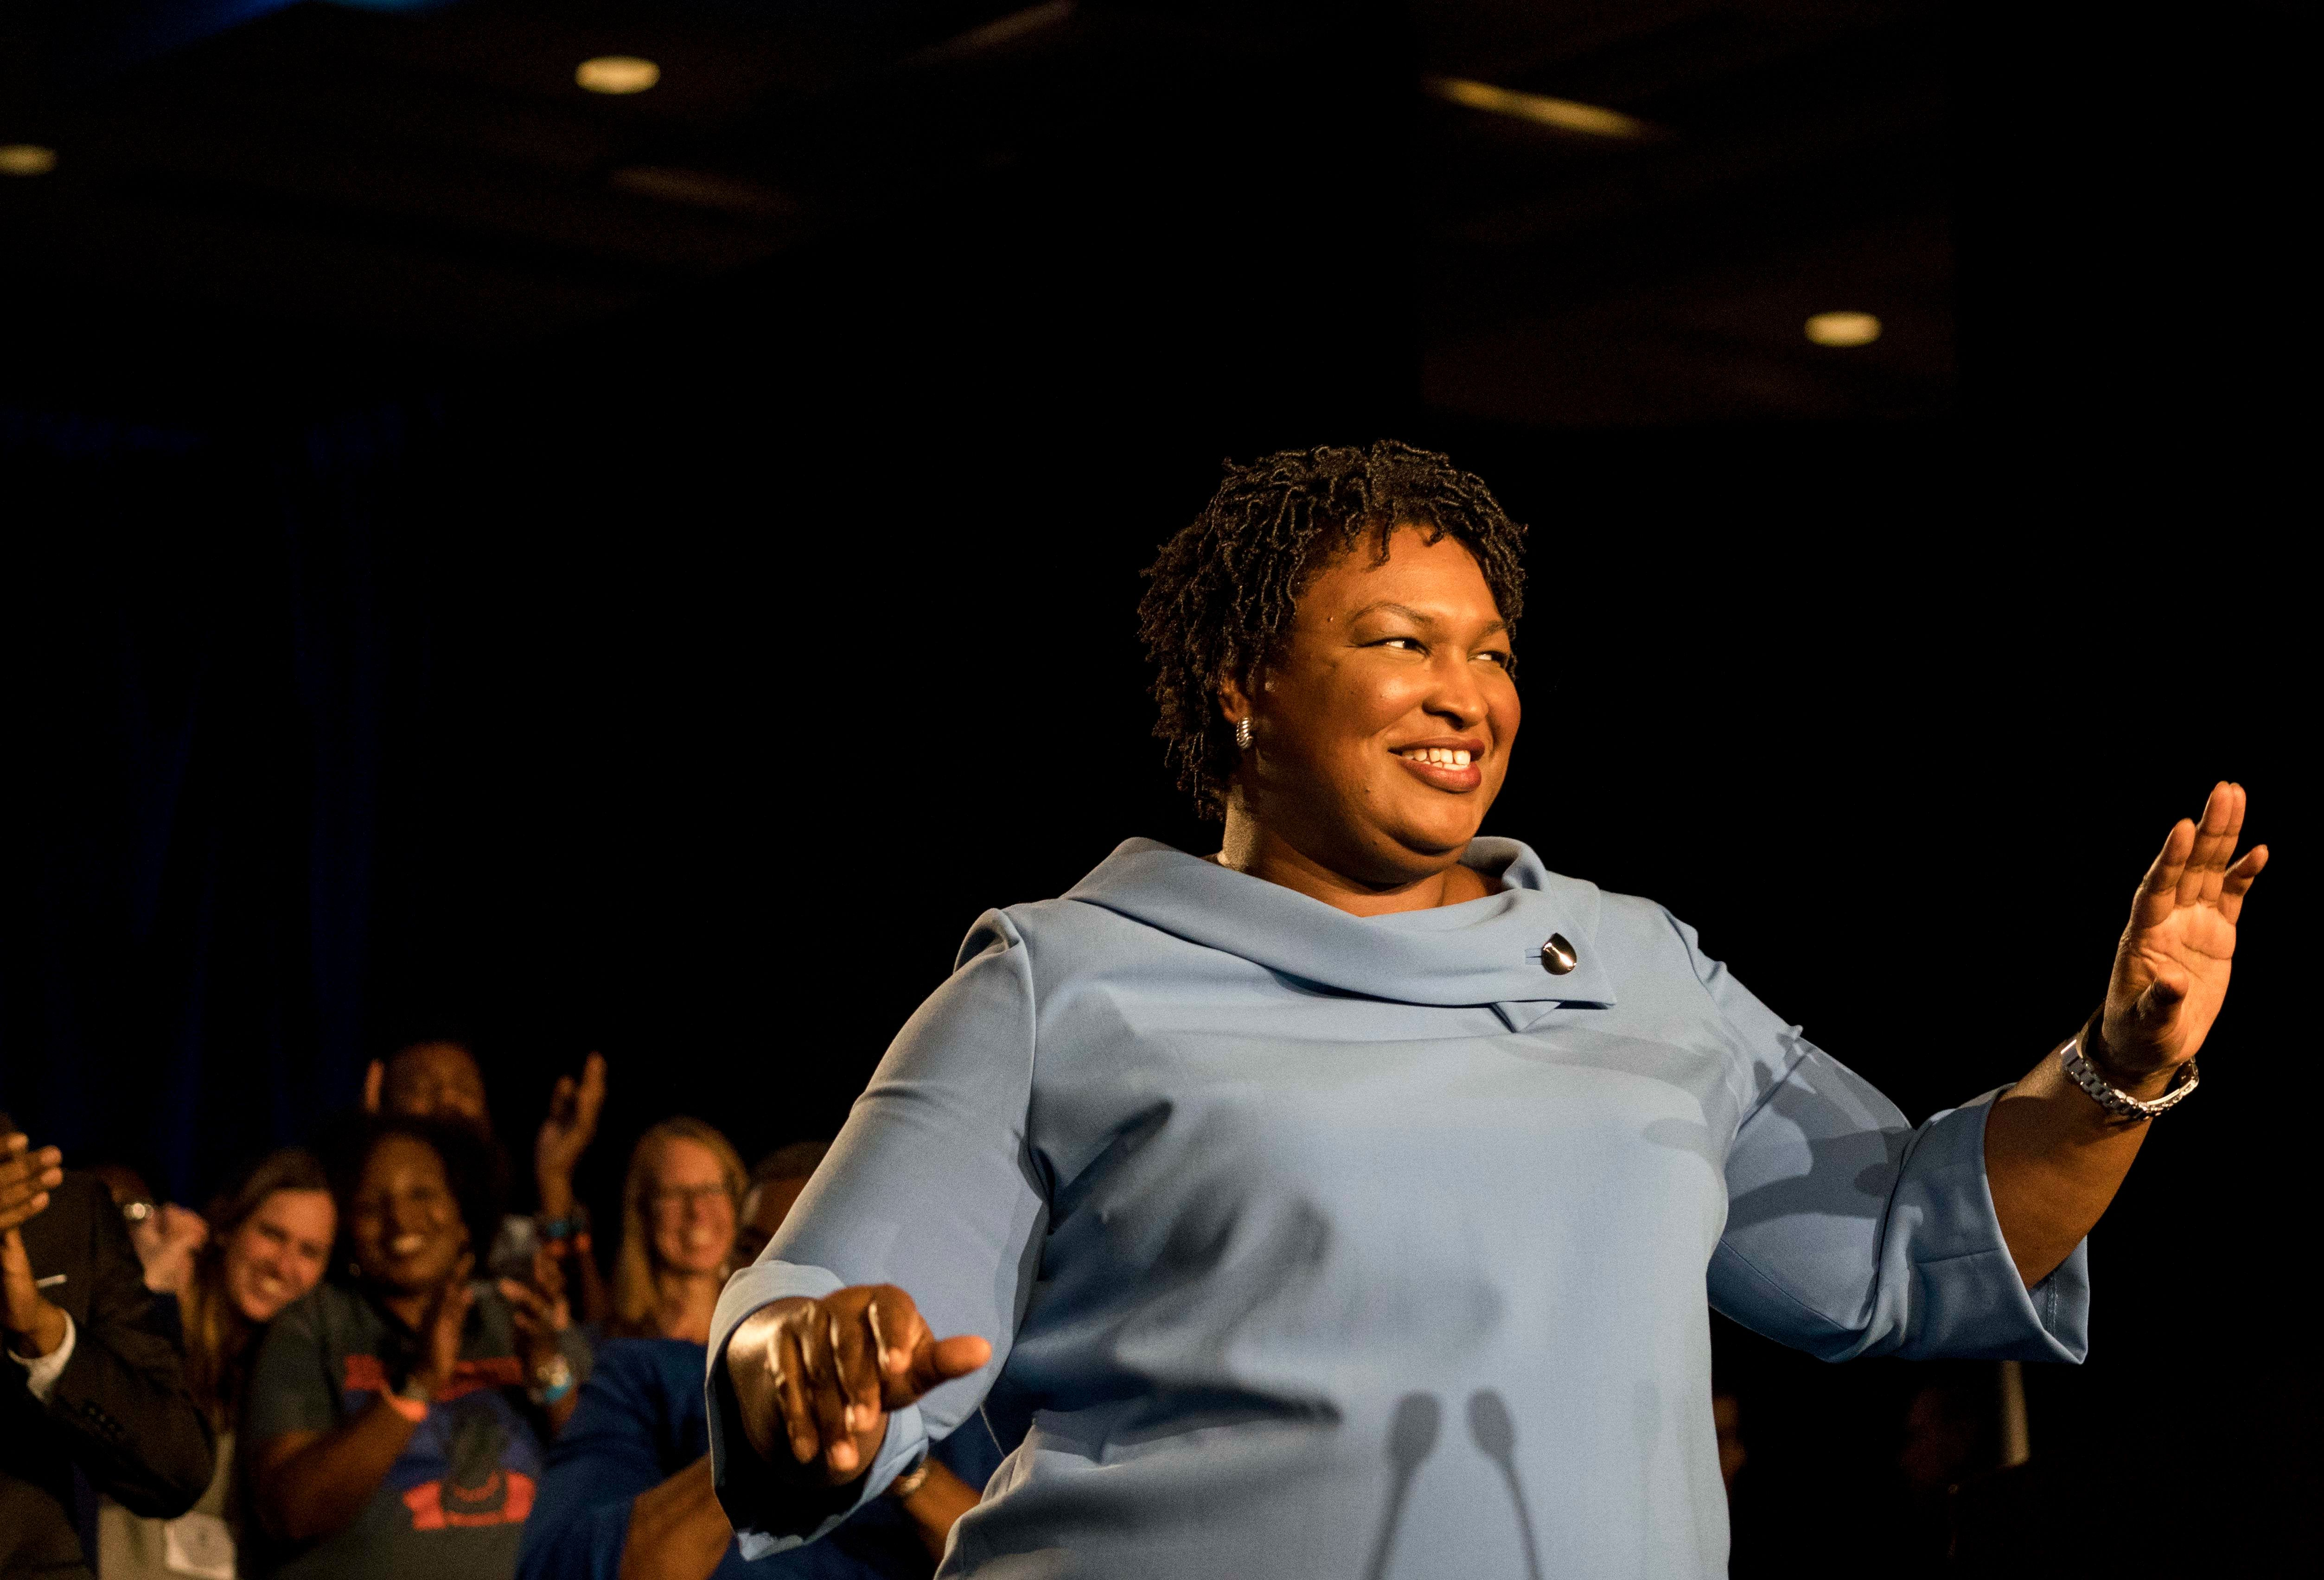 Failed Georgia Candidate Stacey Abrams Will Give SOTU Response